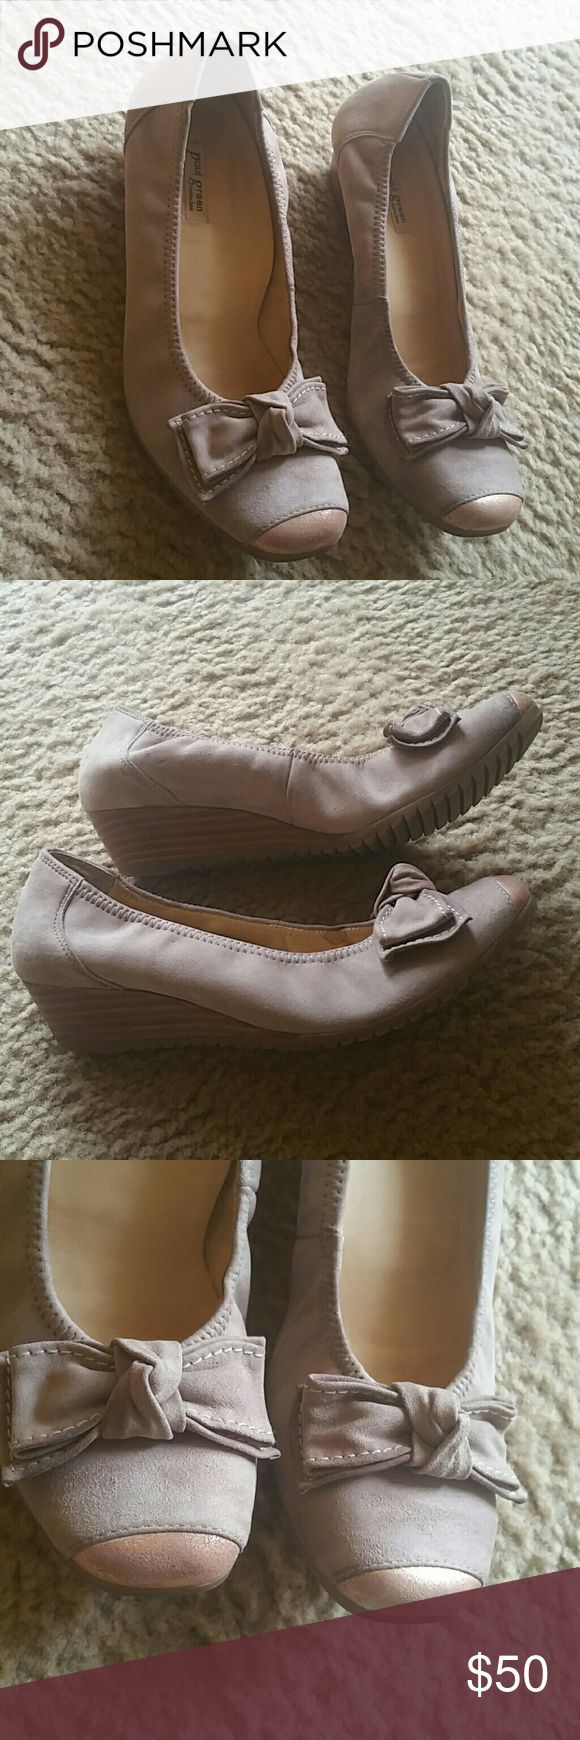 Paul Green wedges shoes size 7 Good condition  The size are 4.5 UK Paul Green Shoes Wedges